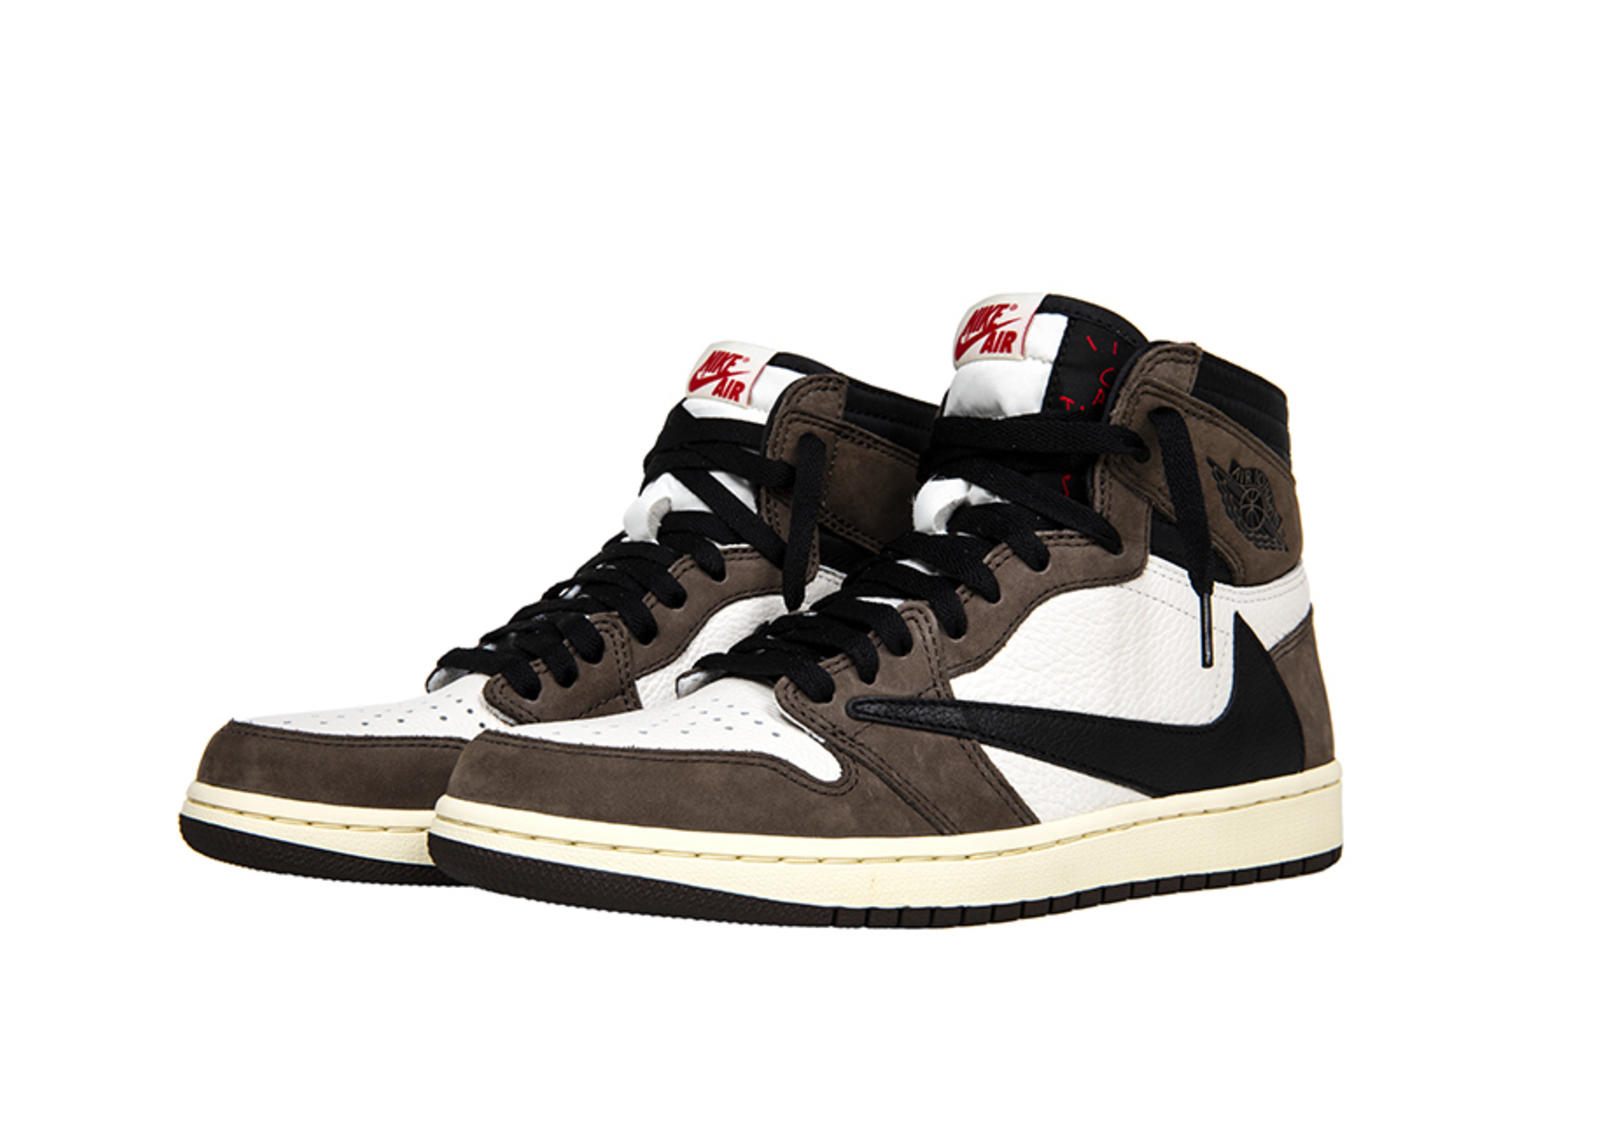 dd44557b895985 Travis Scott Air Jordan I High OG and Apparel Collection Official Images  and Release Date 23